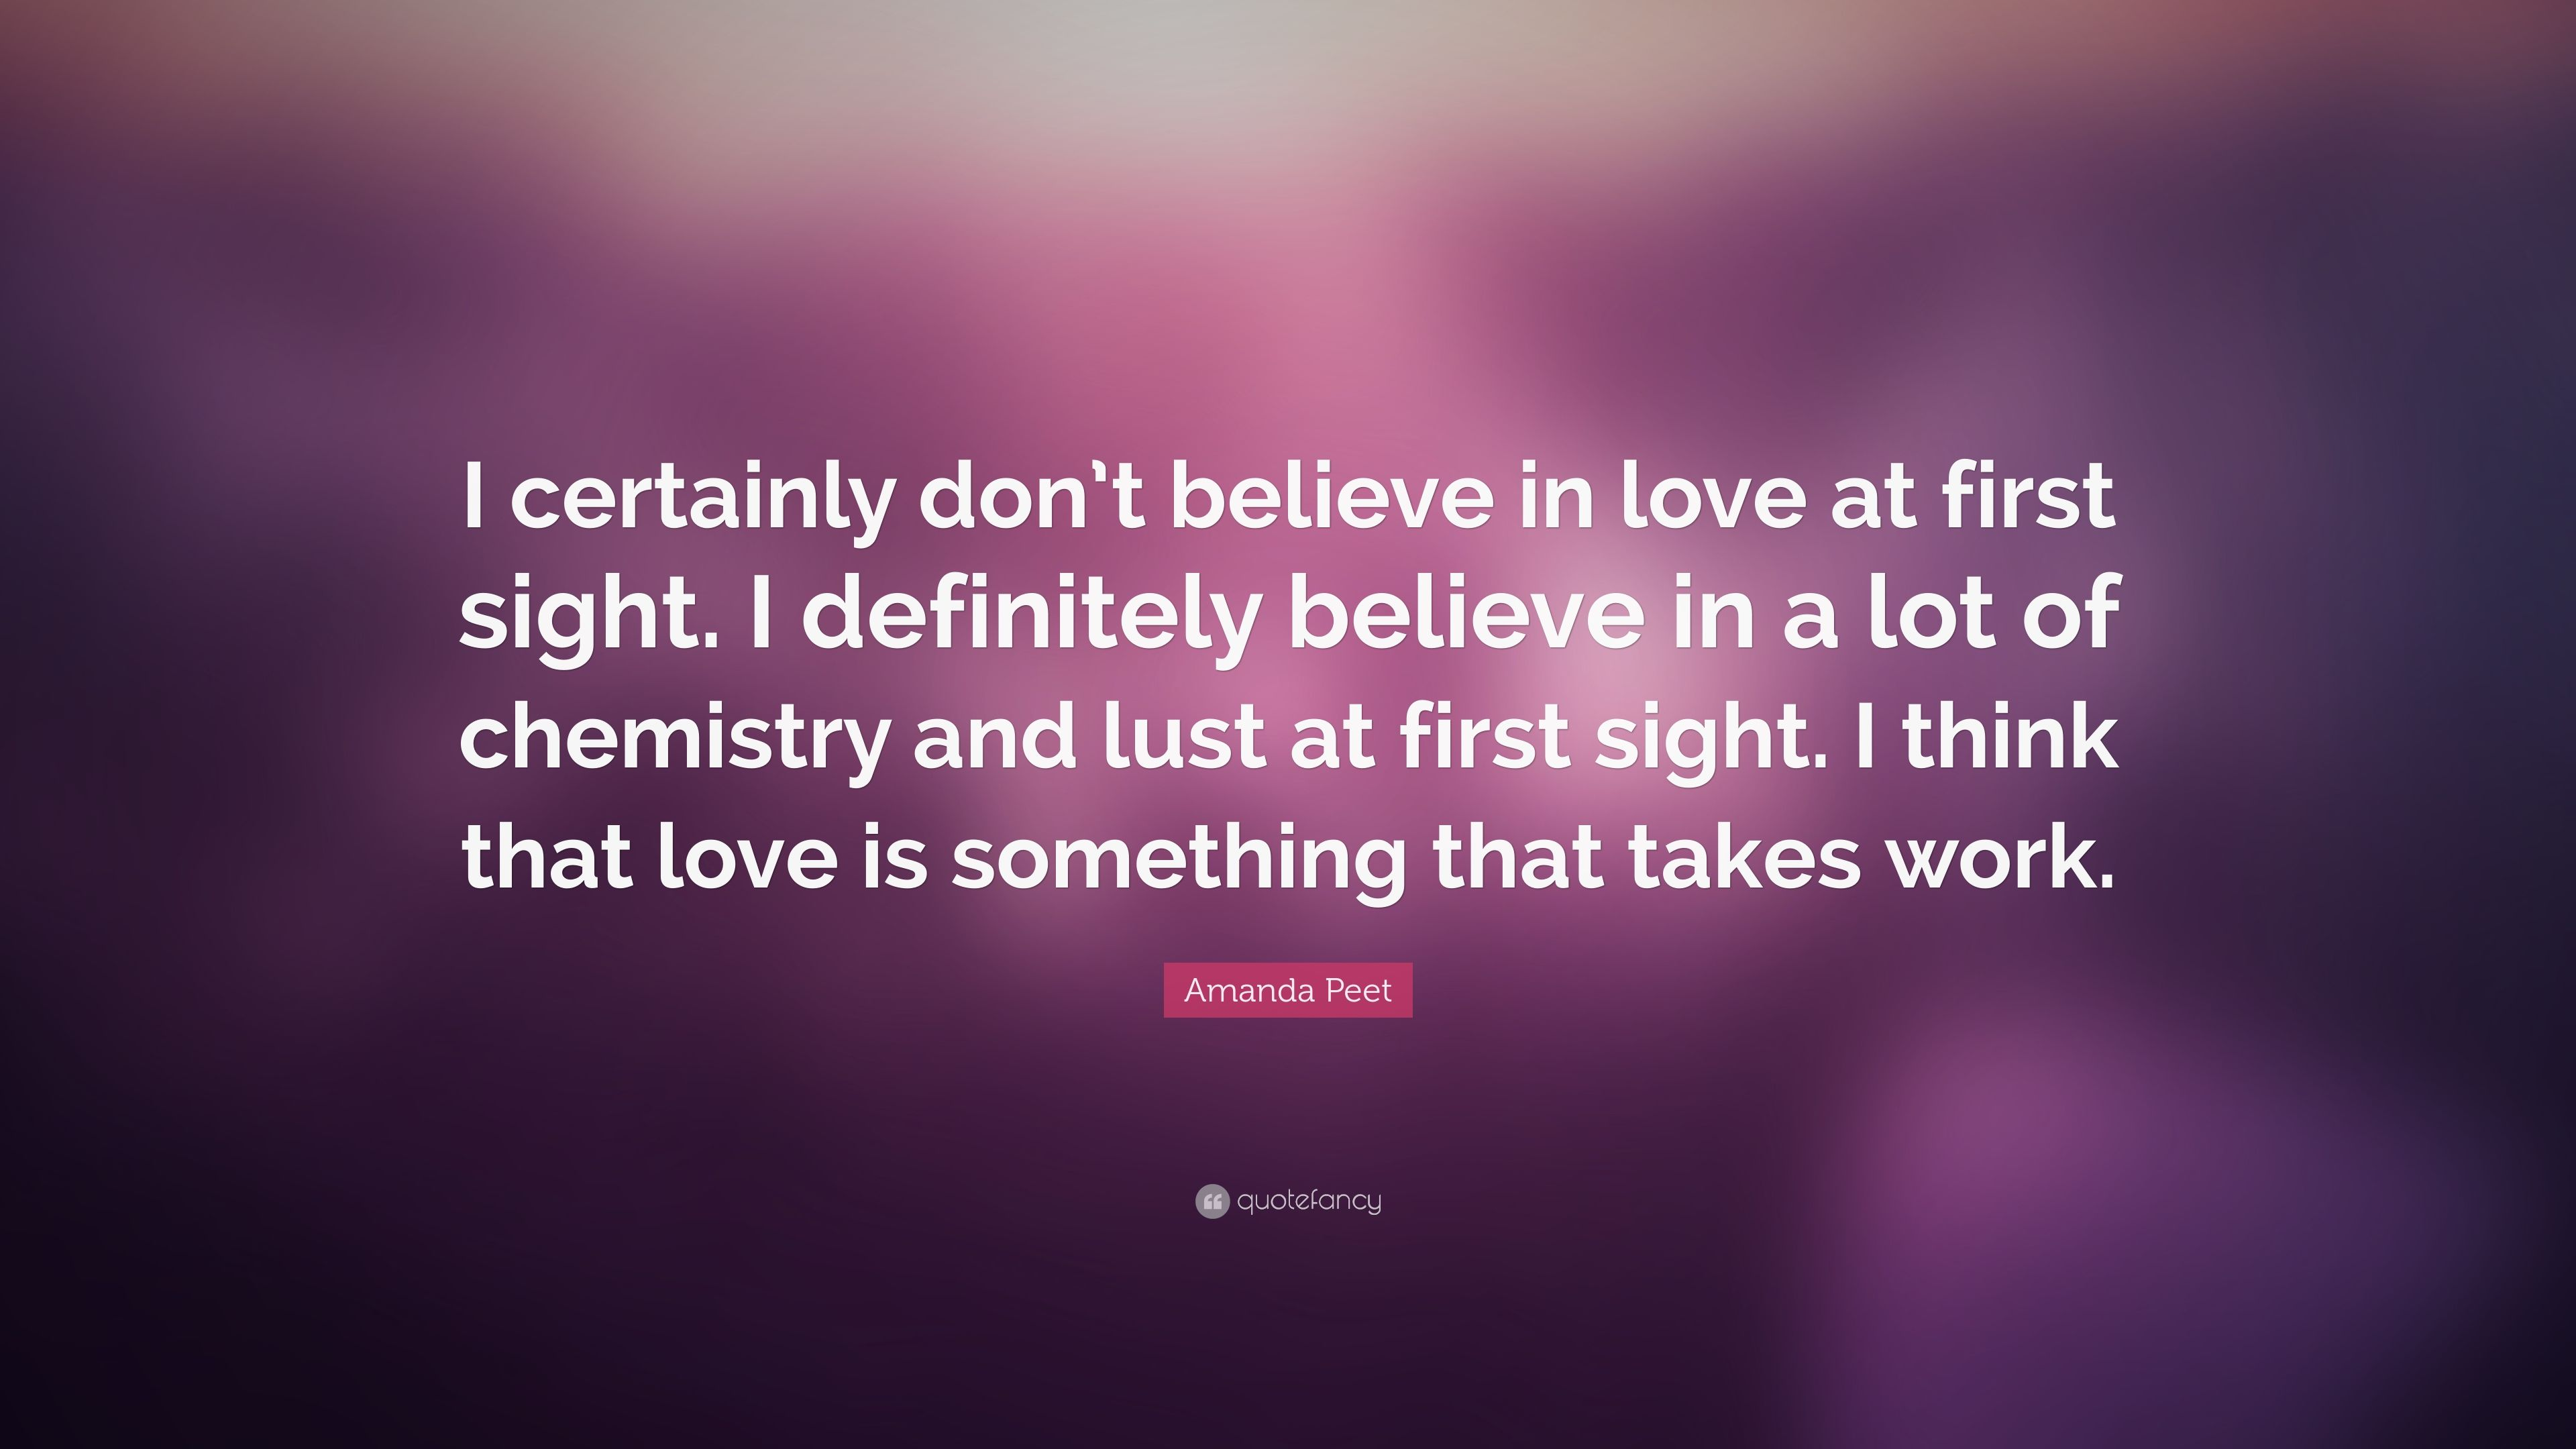 Amanda Peet Quote: U201cI Certainly Donu0027t Believe In Love At First Sight